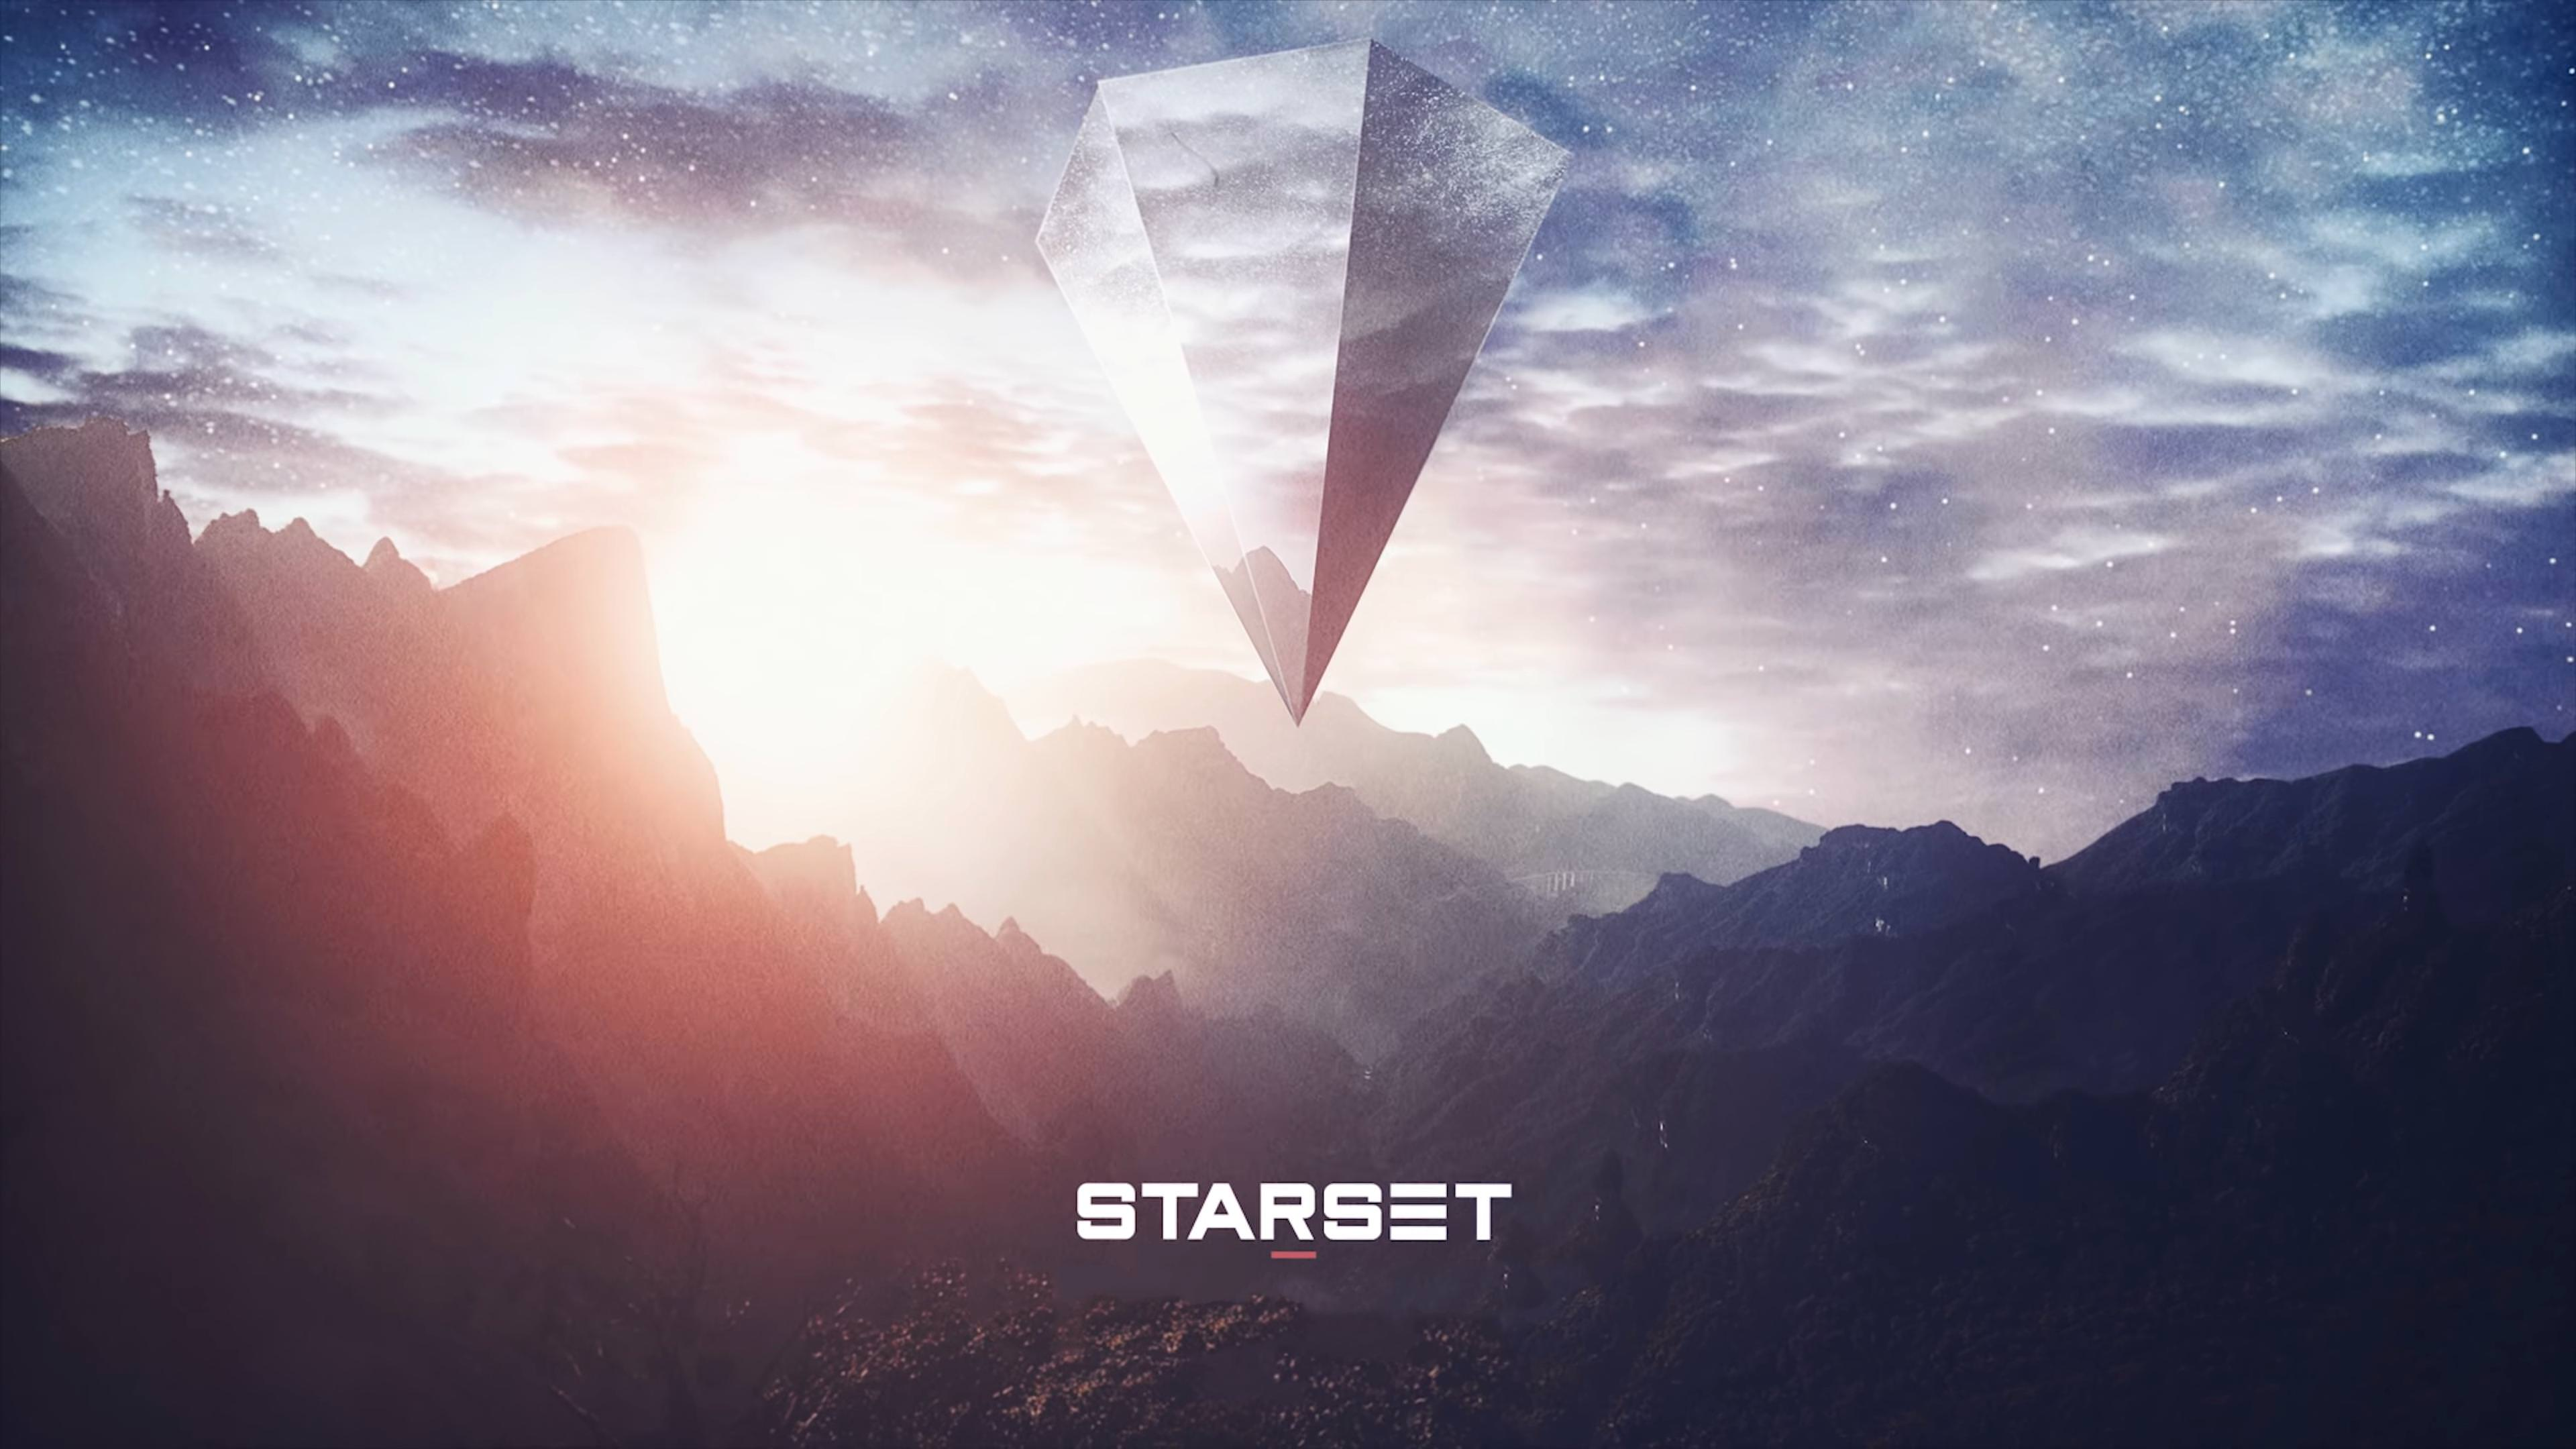 3840x2160 Starset wallpaper (Die For You acoustic version) - Album on Imgur